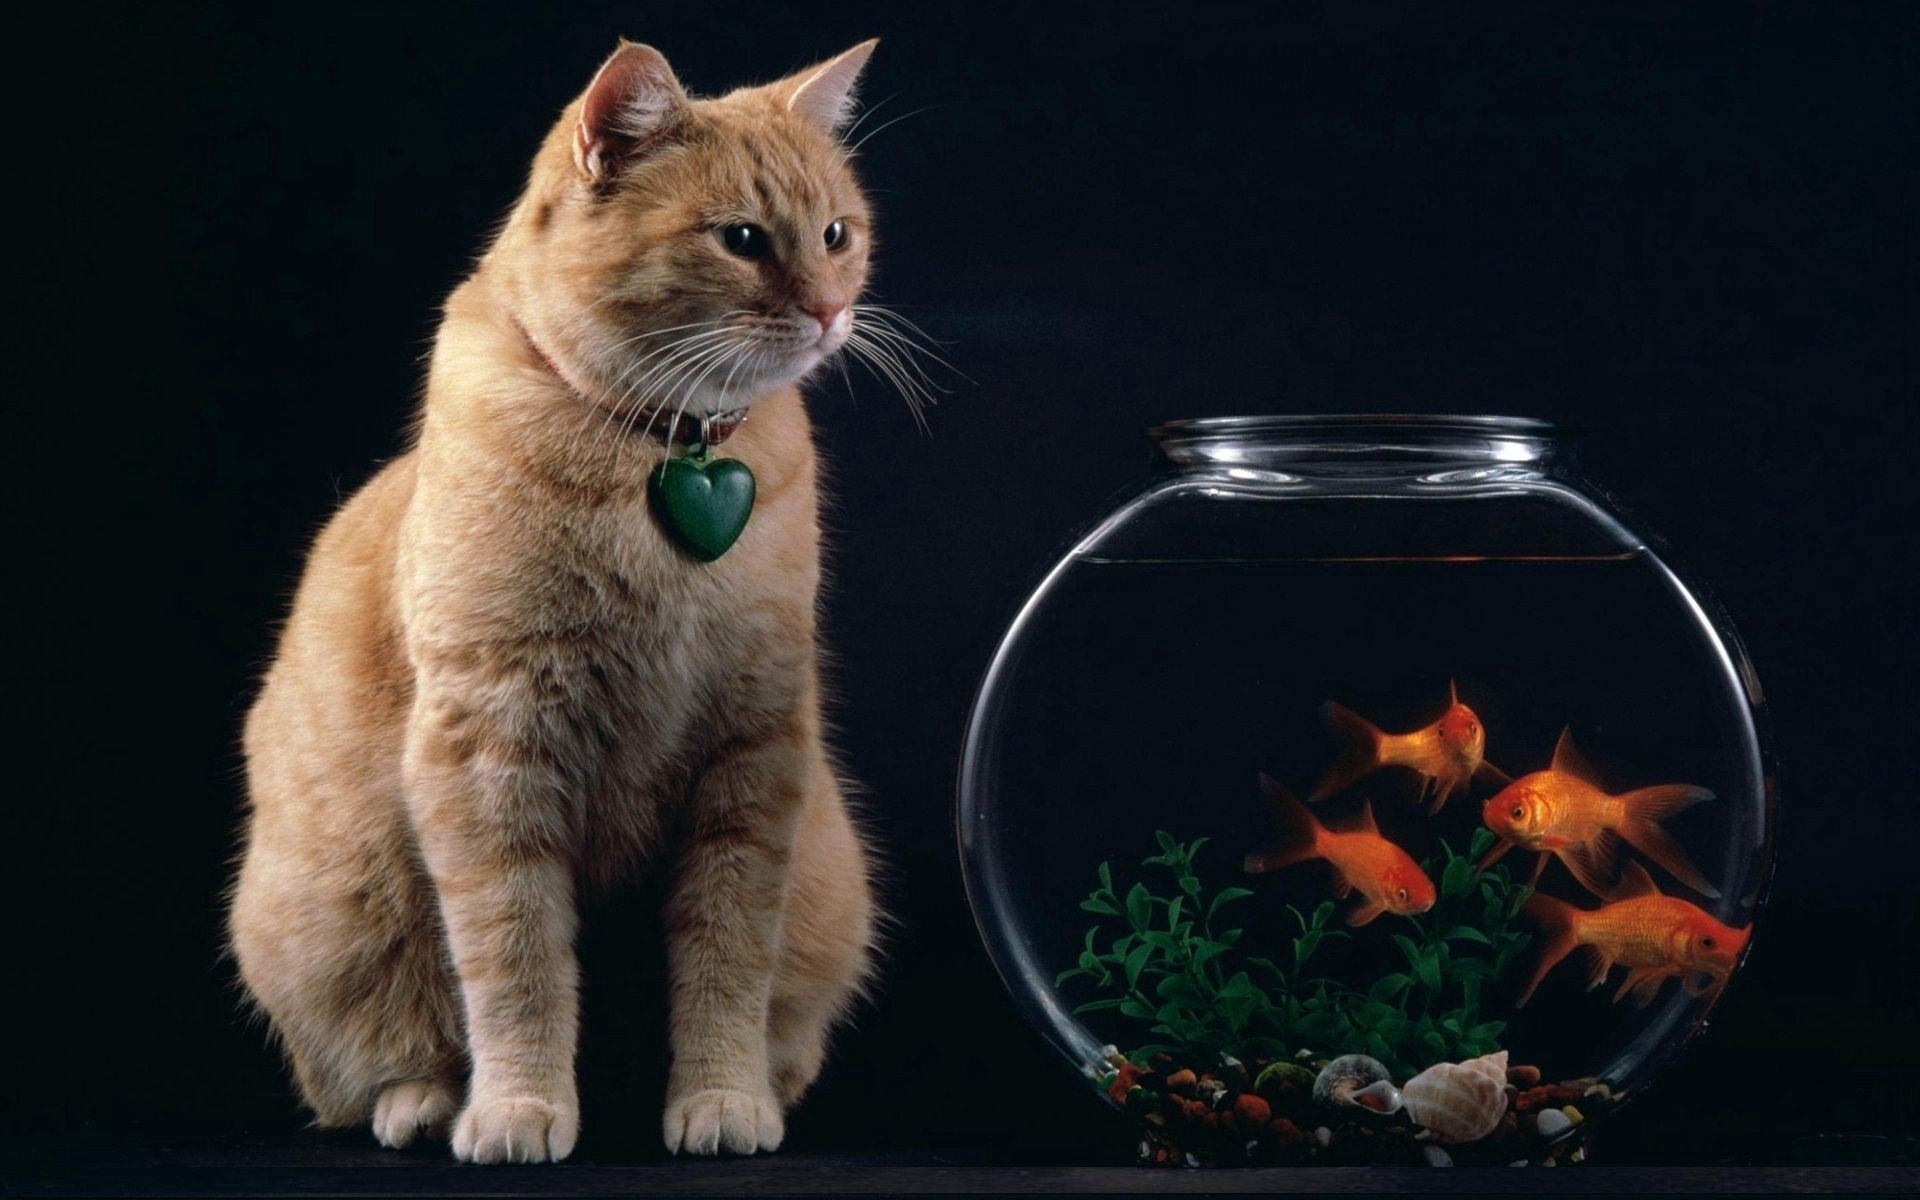 154771 download wallpaper Fishes, Animals, Cat, Suspension, Heart, Aquarium screensavers and pictures for free